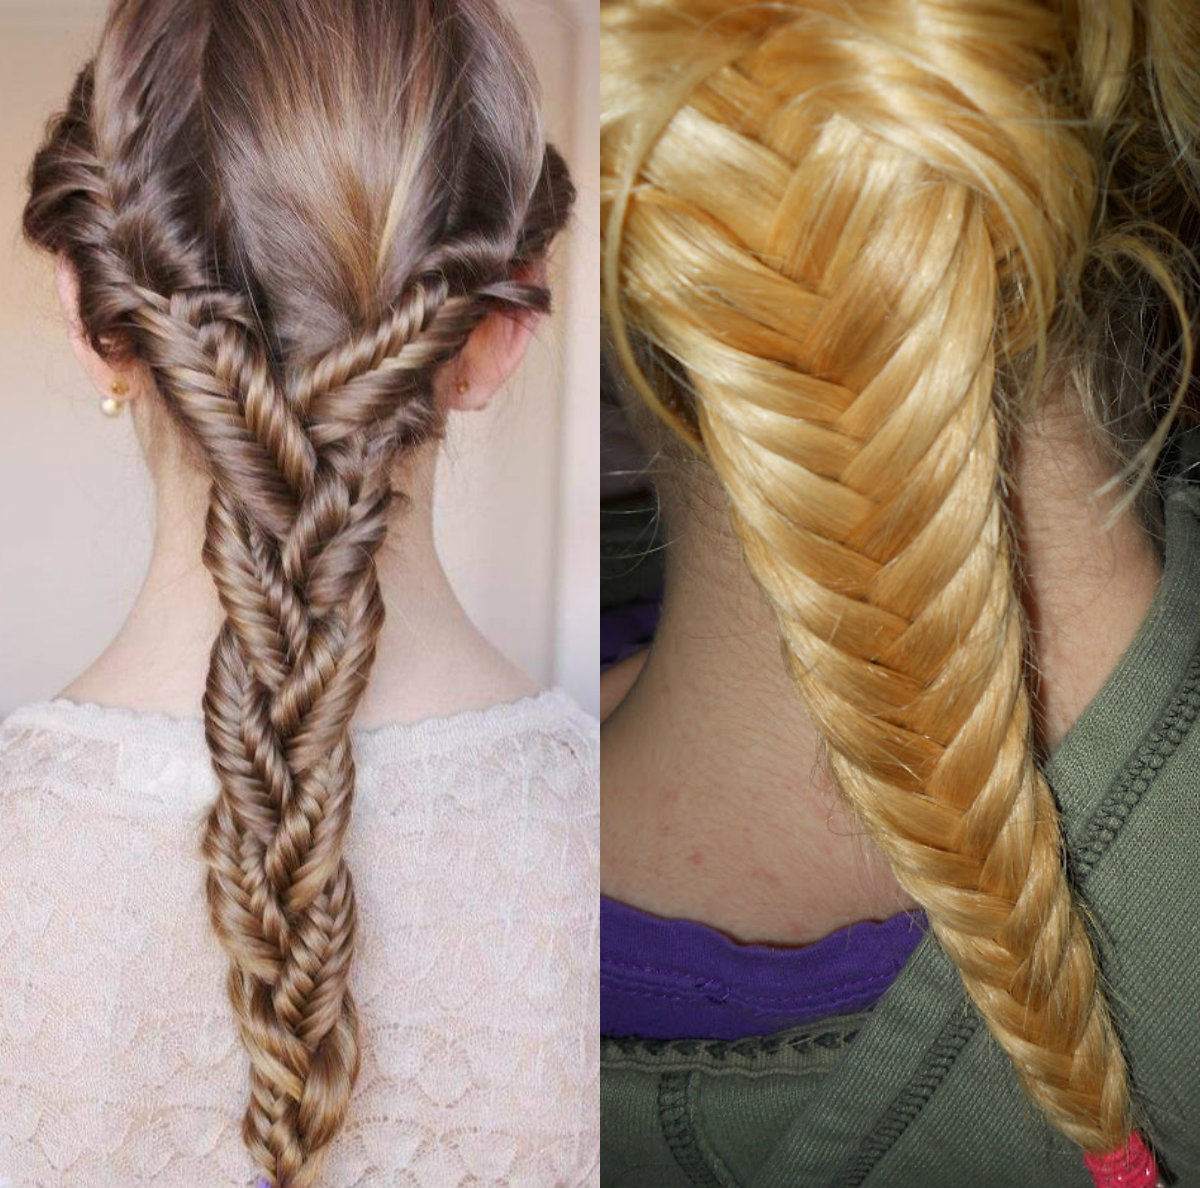 fishbone braid hairstyles ideas to try | hairdrome